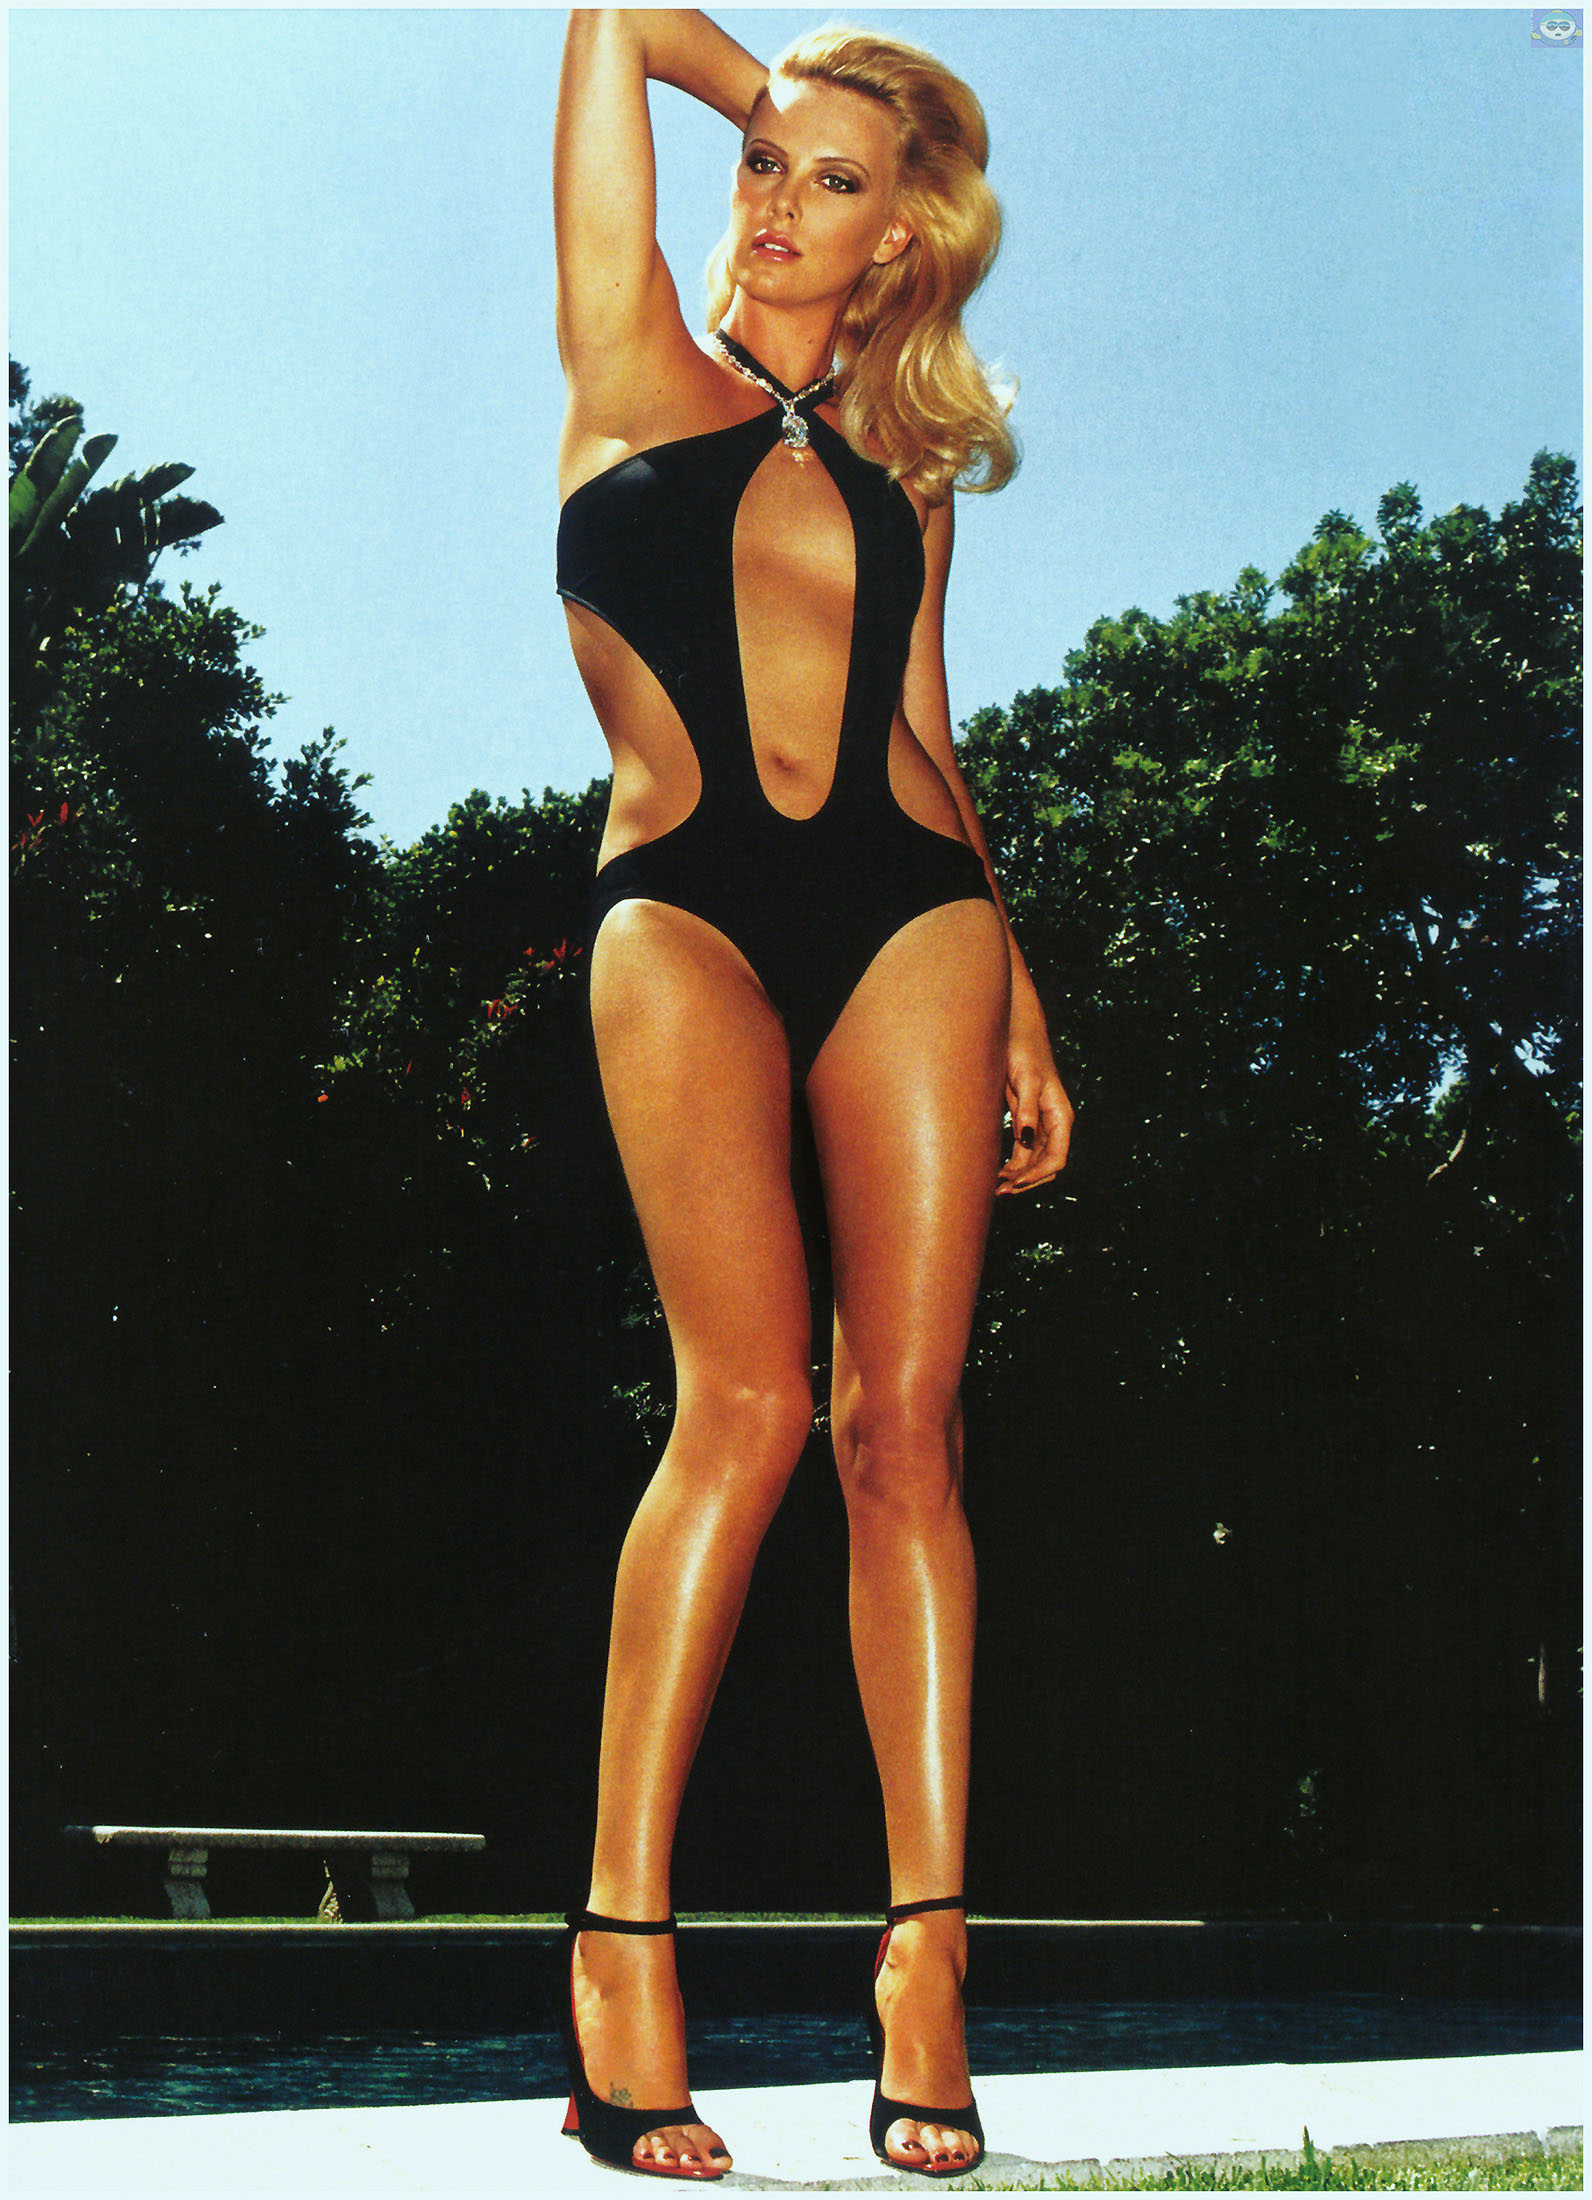 from Maxim charlize theron nude body